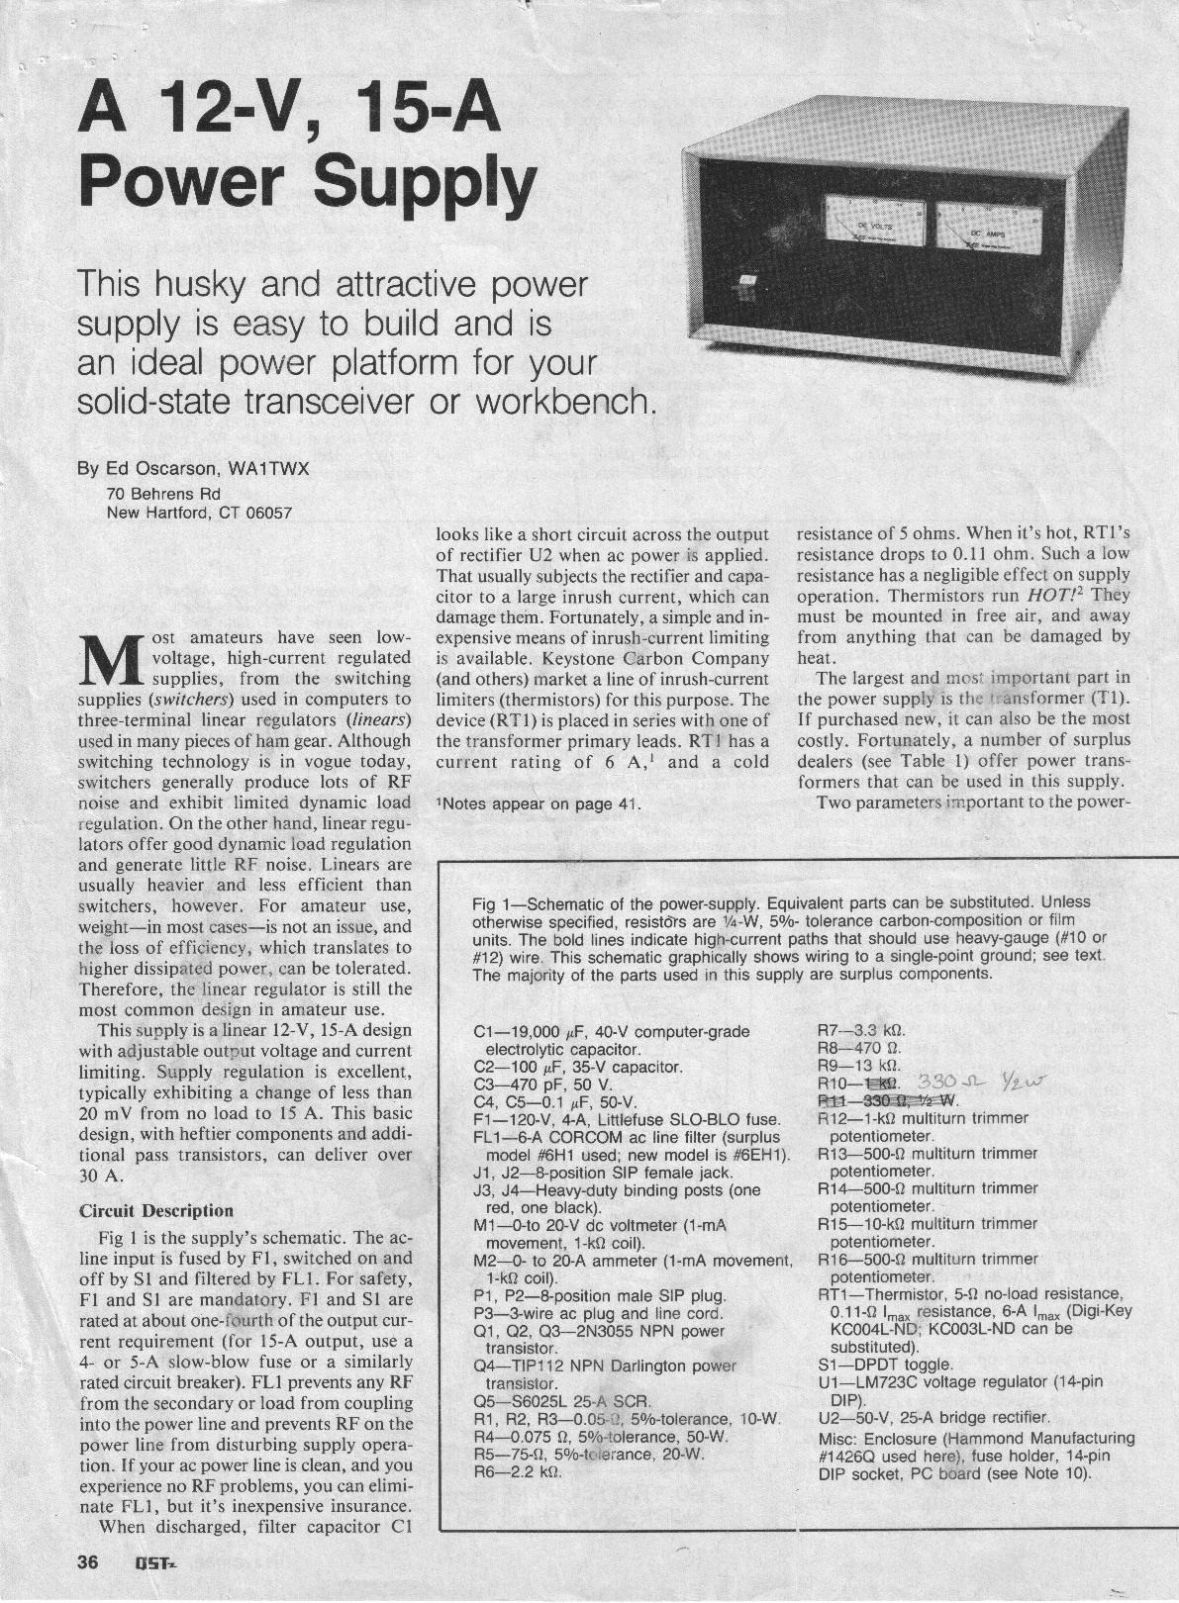 Amp Desk Top Power Supply Article